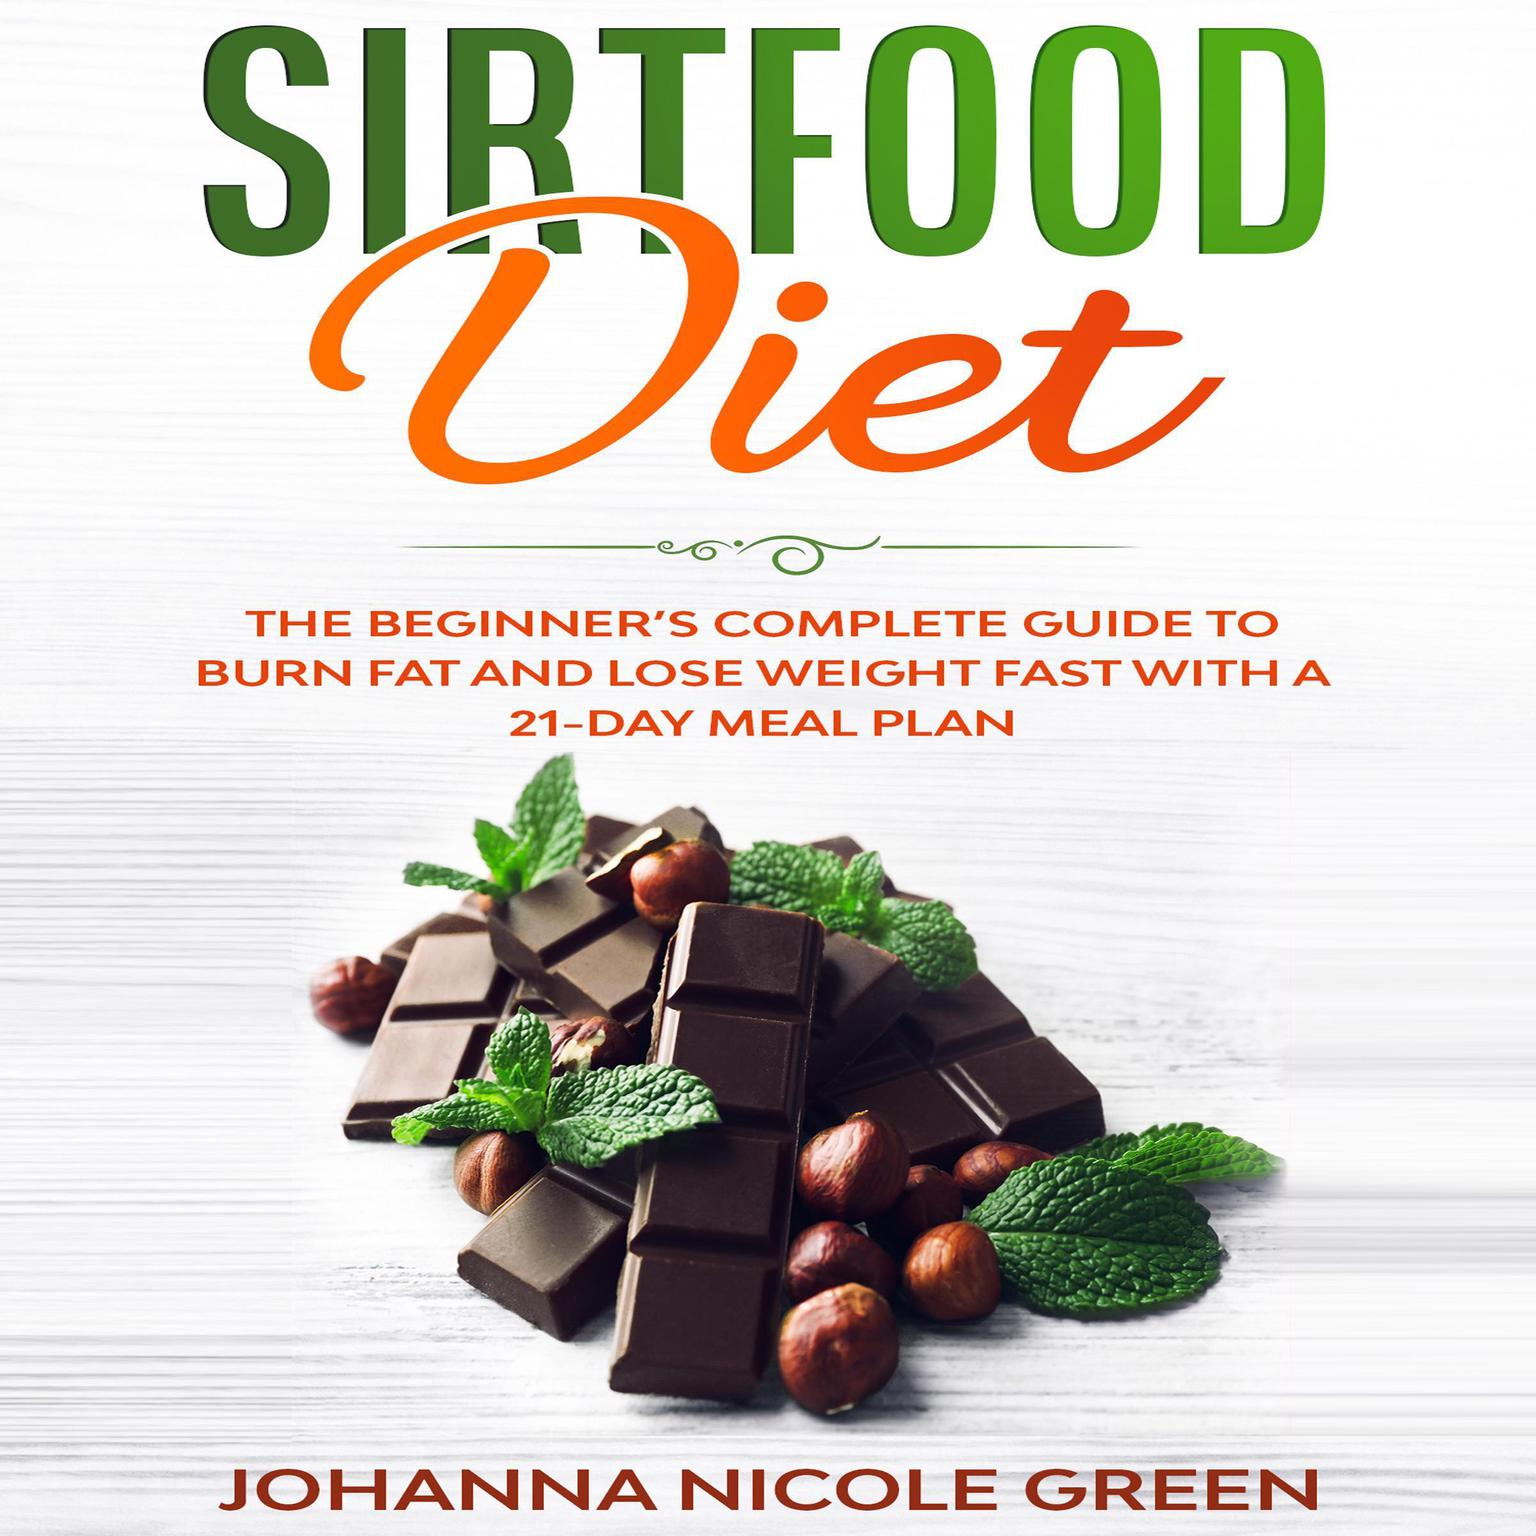 Sirtfood Diet: The Beginner's Complete Guide to Burn Fat and Lose Weight Fast with a 21-Day Meal Plan Audiobook, by Johanna Nicole Green